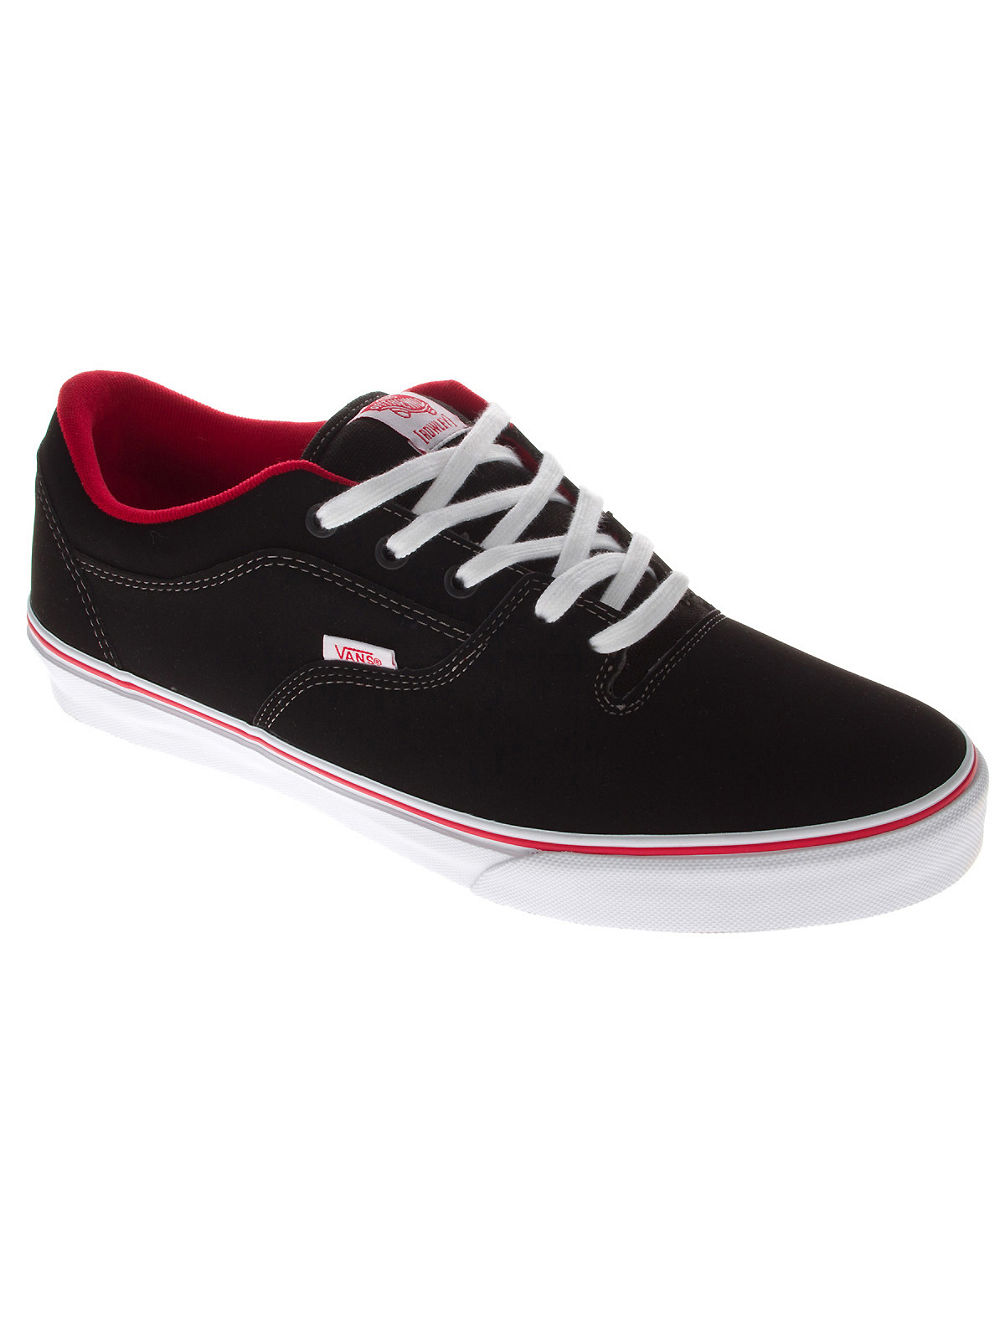 10309988d5 Buy Vans Rowley Style 99 s online at Blue Tomato